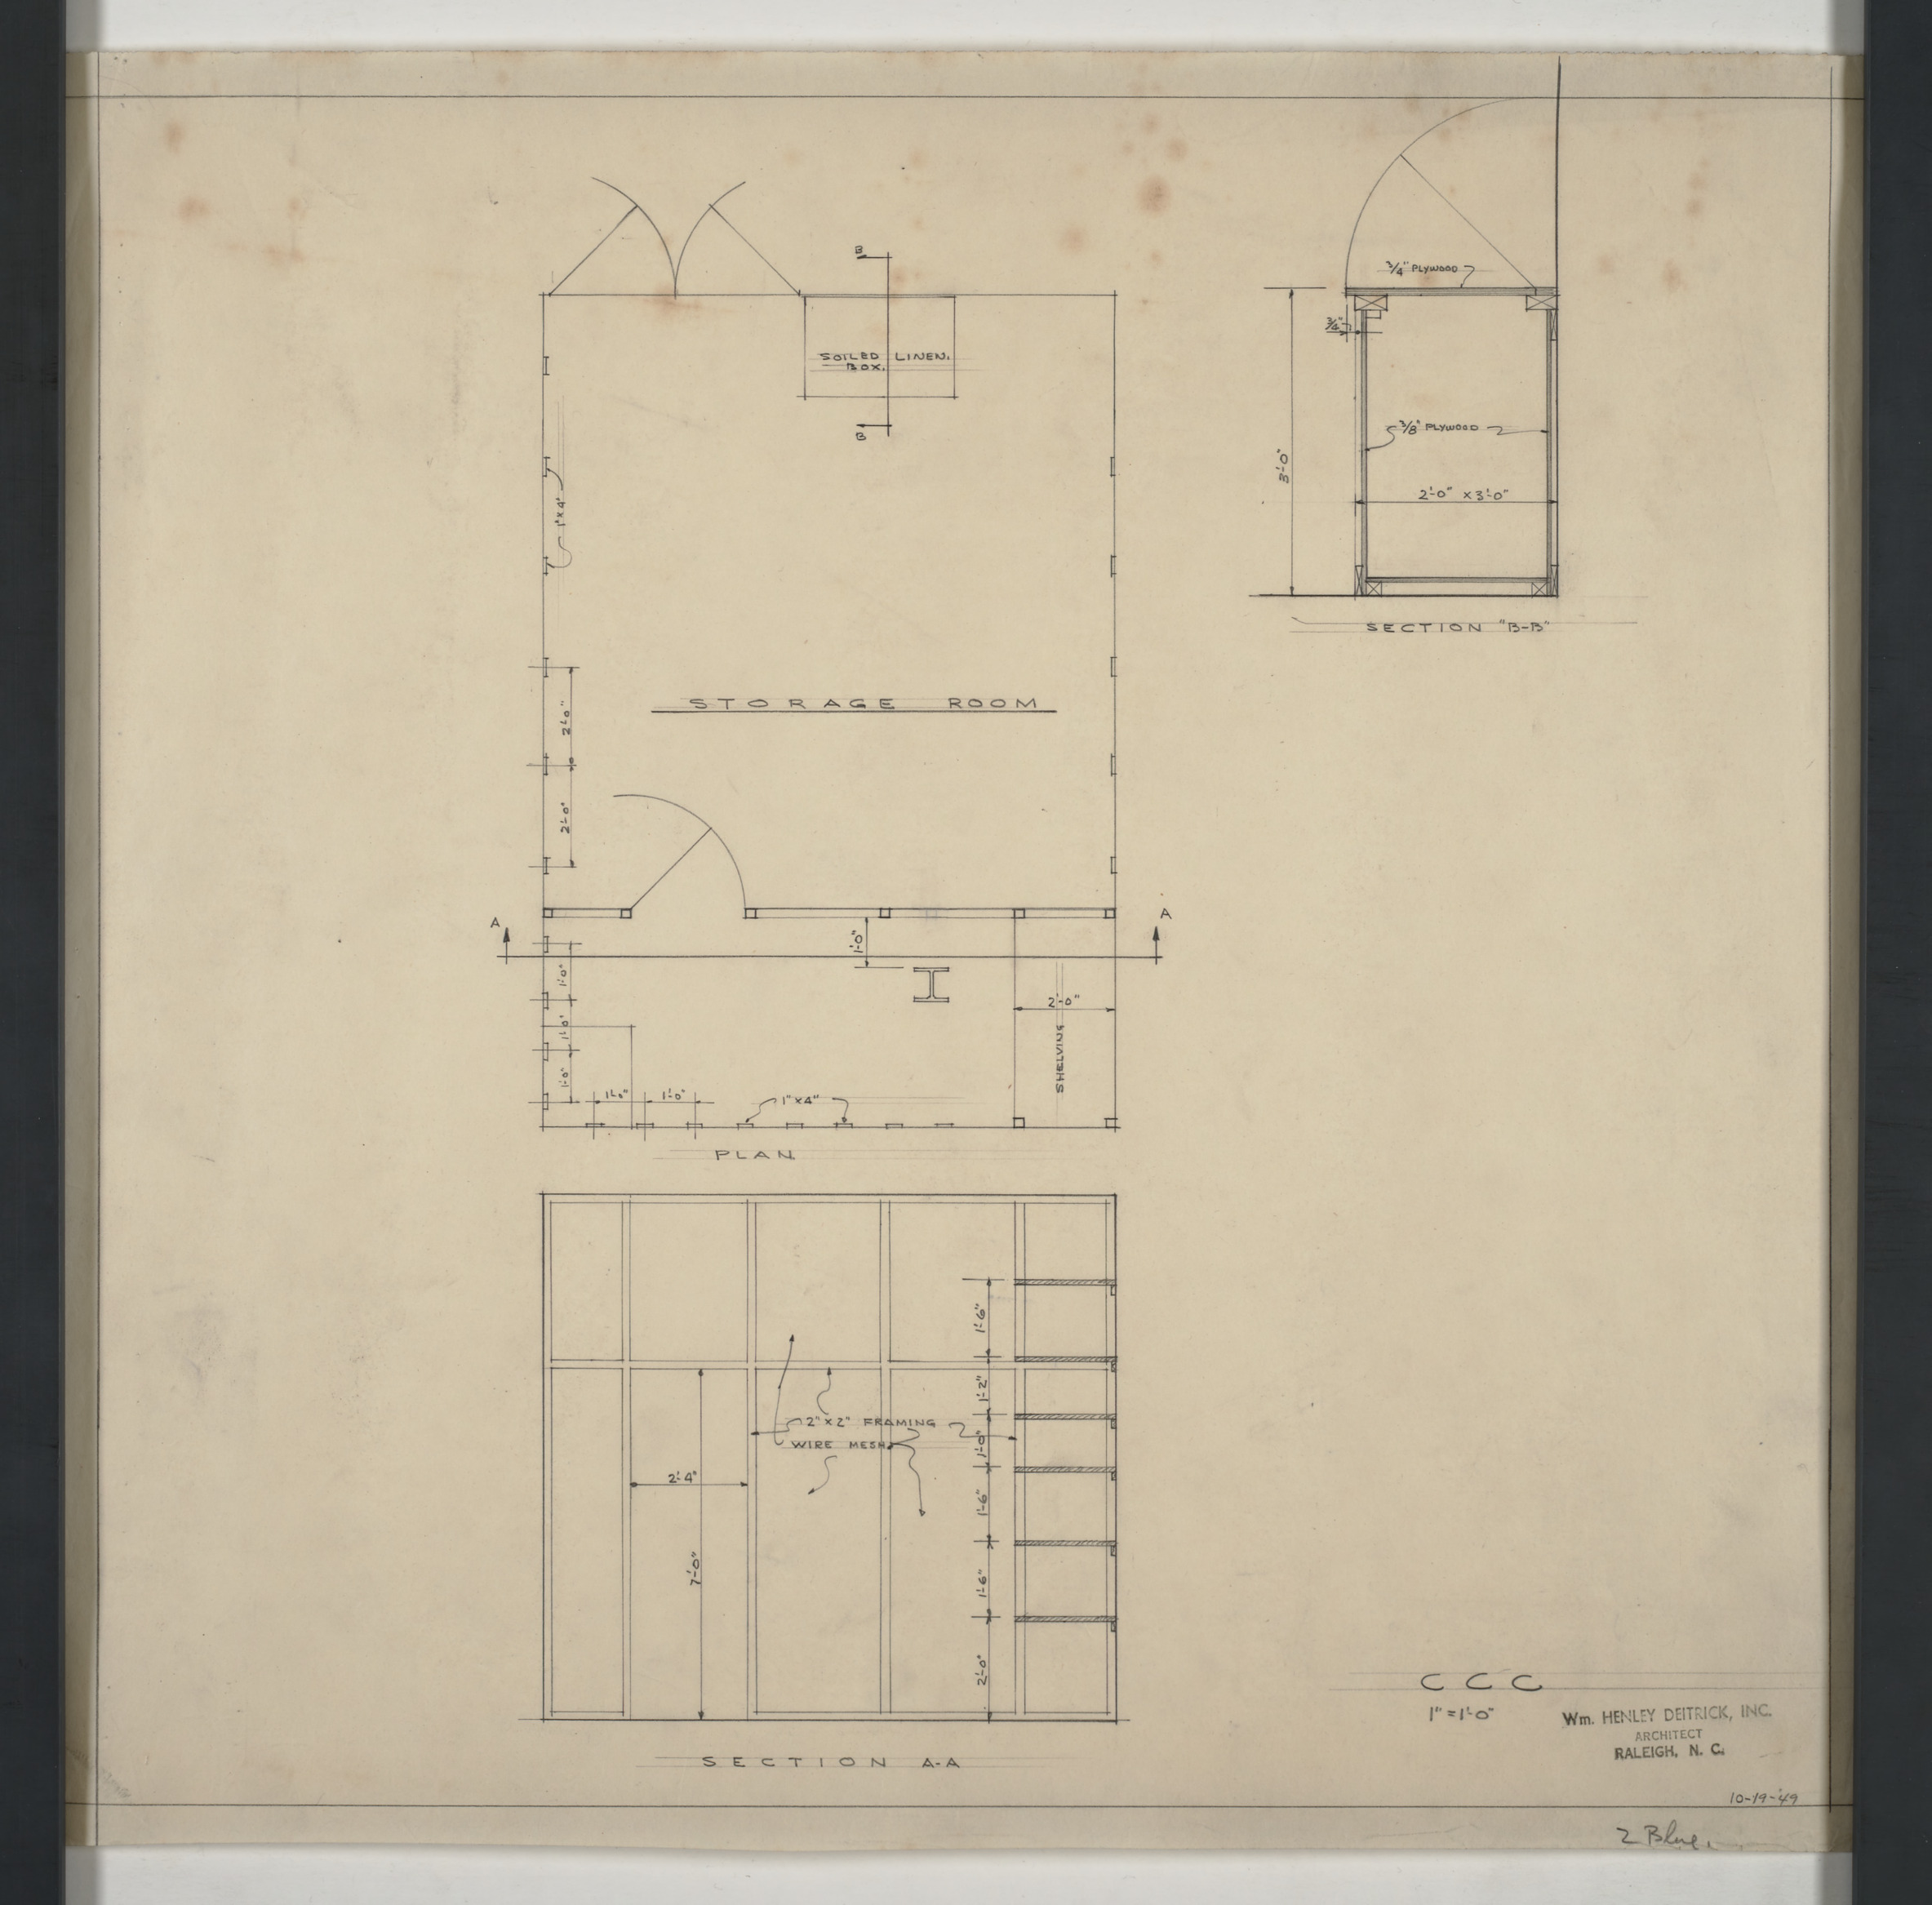 Carolina Country Club Storage Room Plan And Sections